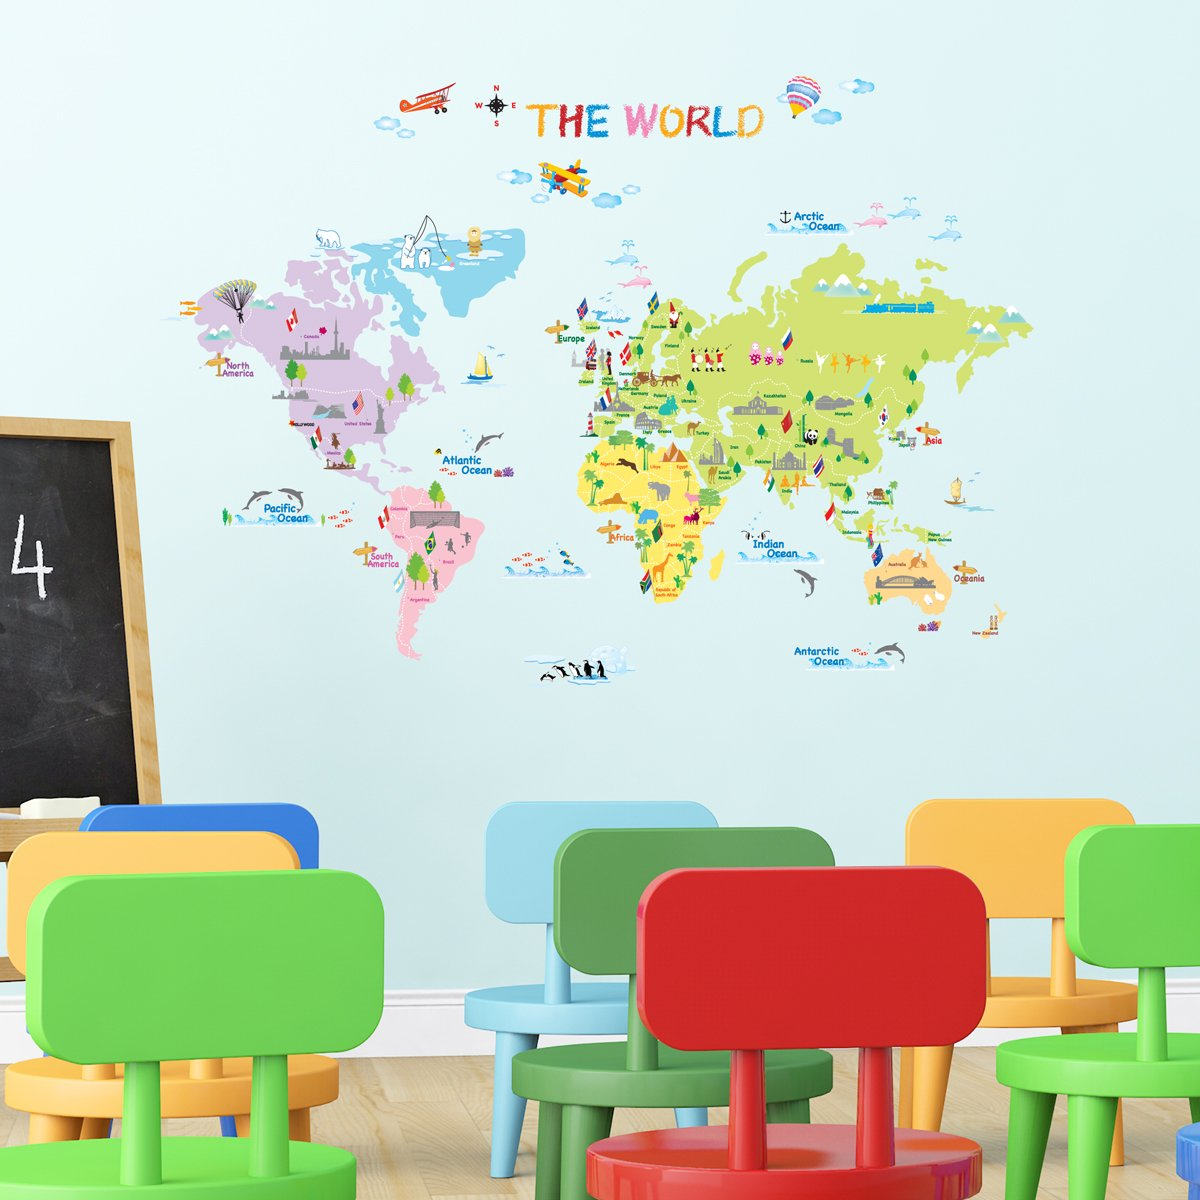 decowall dw 1203 multicoloured world map kids wall stickers wall decowall dw 1203 multicoloured world map kids wall stickers wall decals peel and stick removable wall stickers for kids nursery bedroom living room